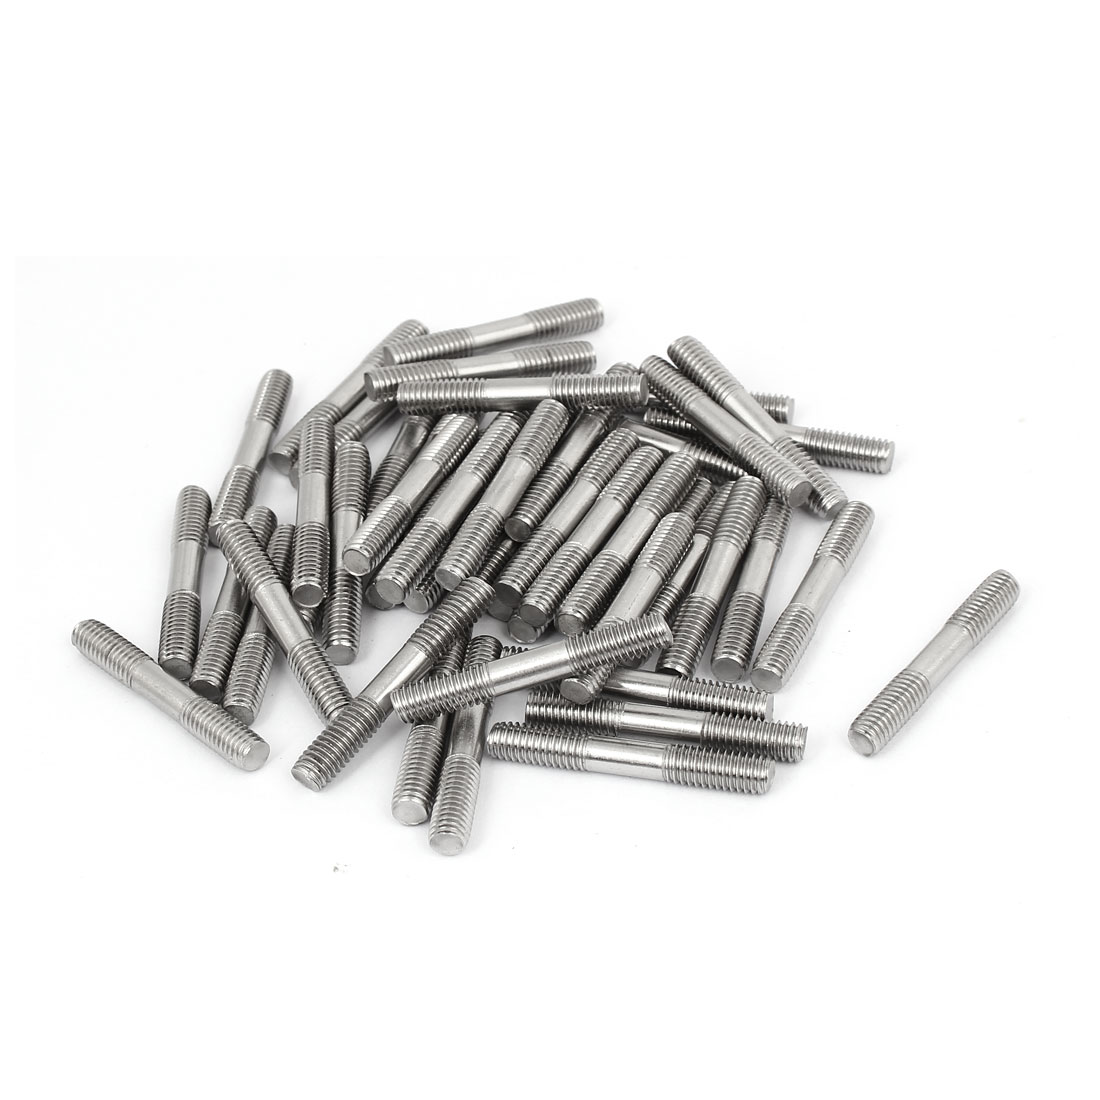 M6x40mm 304 Stainless Steel Double End Threaded Stud Screw Bolt 50pcs